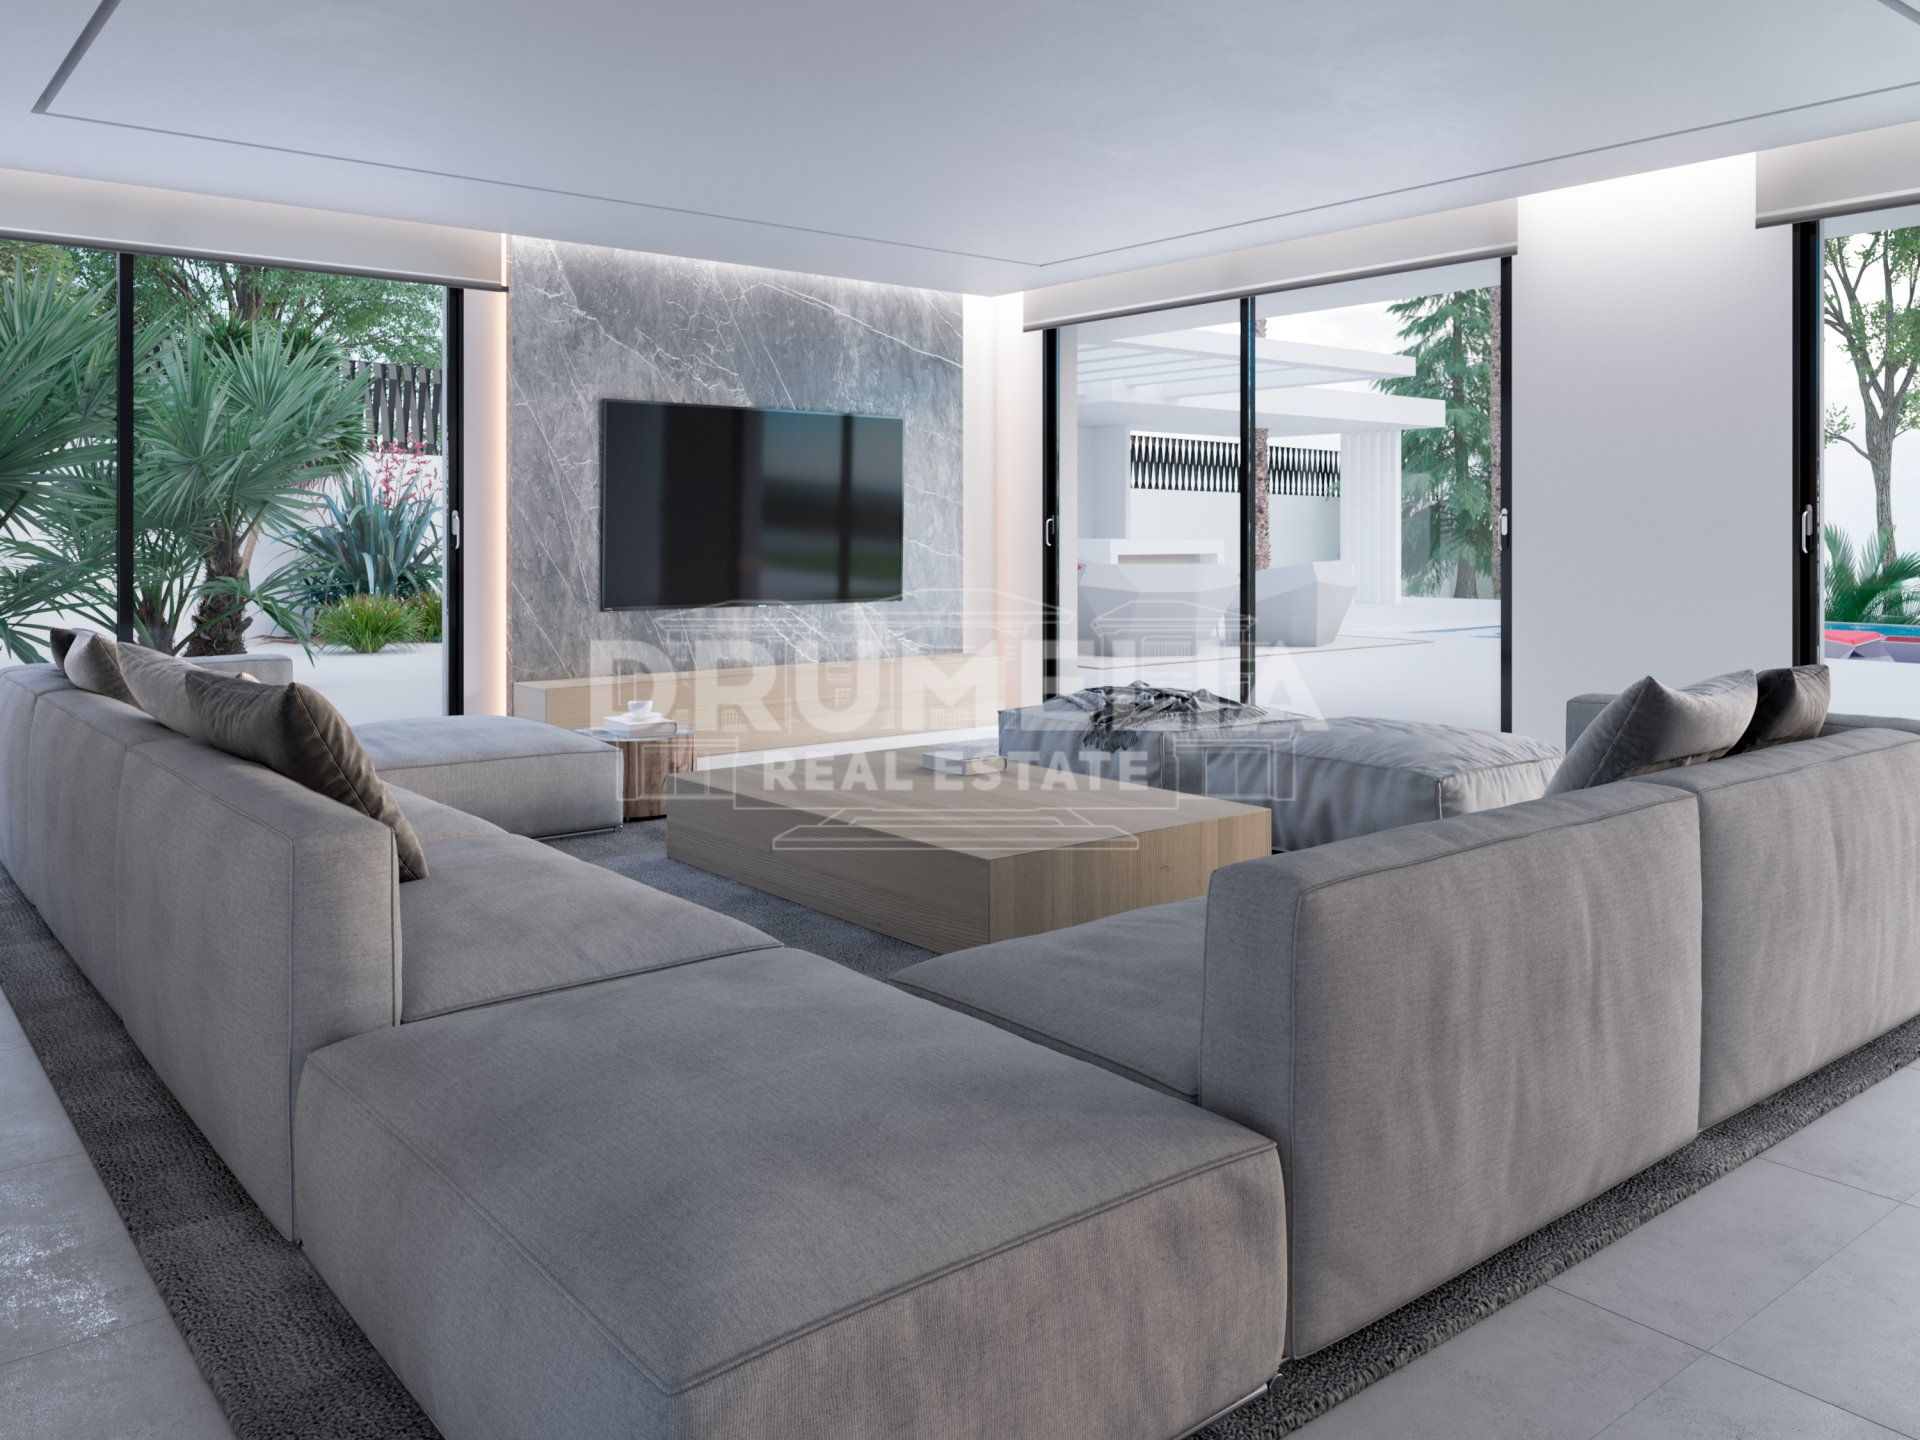 Marbella East, Brand New Spectacular Sophisticated Modern Luxury Villa, Marbesa, Marbella East